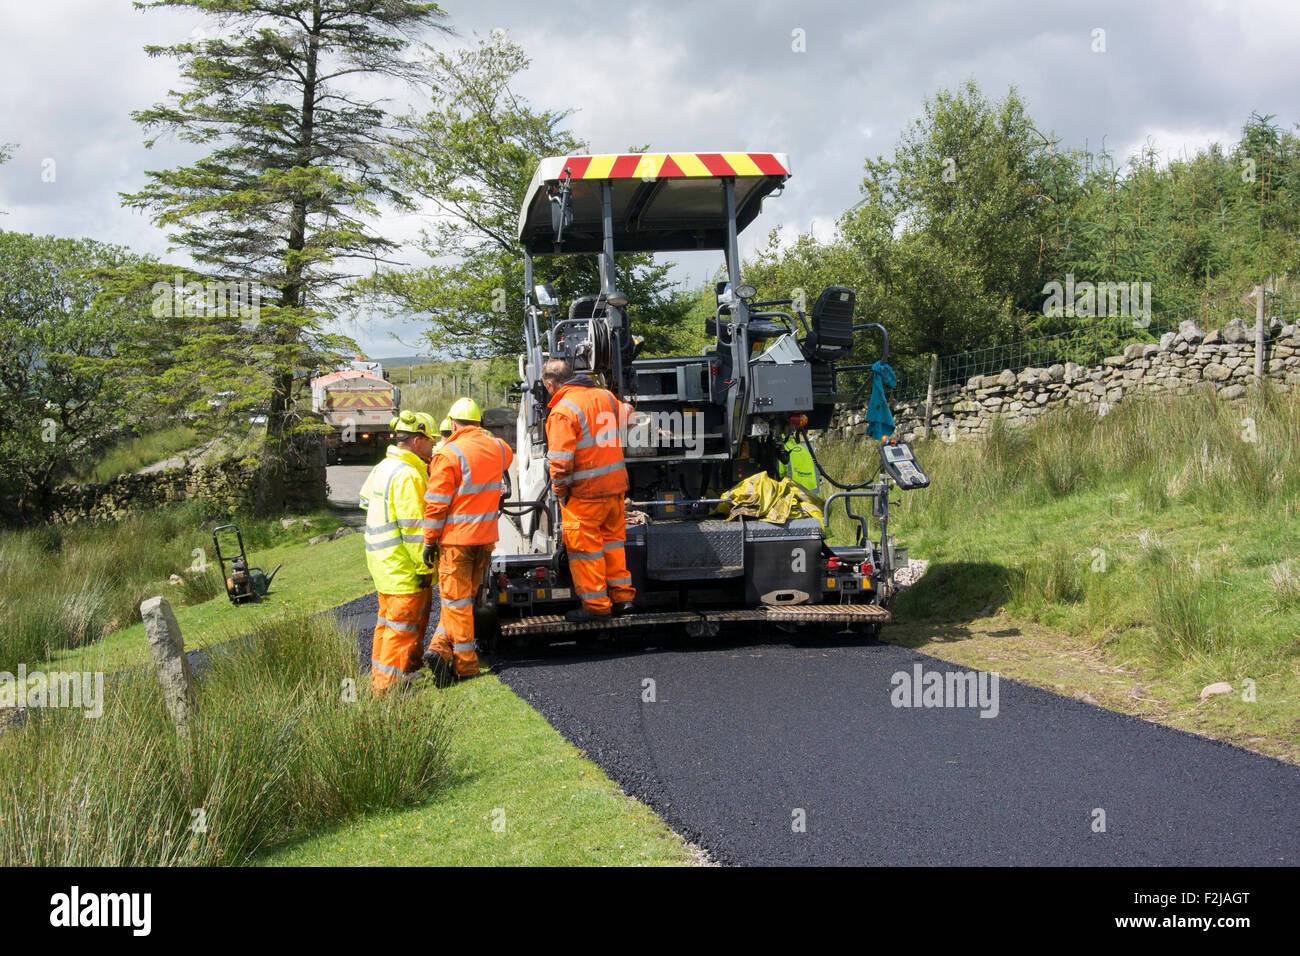 County Council workers laying tarmac on rural road in Cumbria, UK. - Stock Image